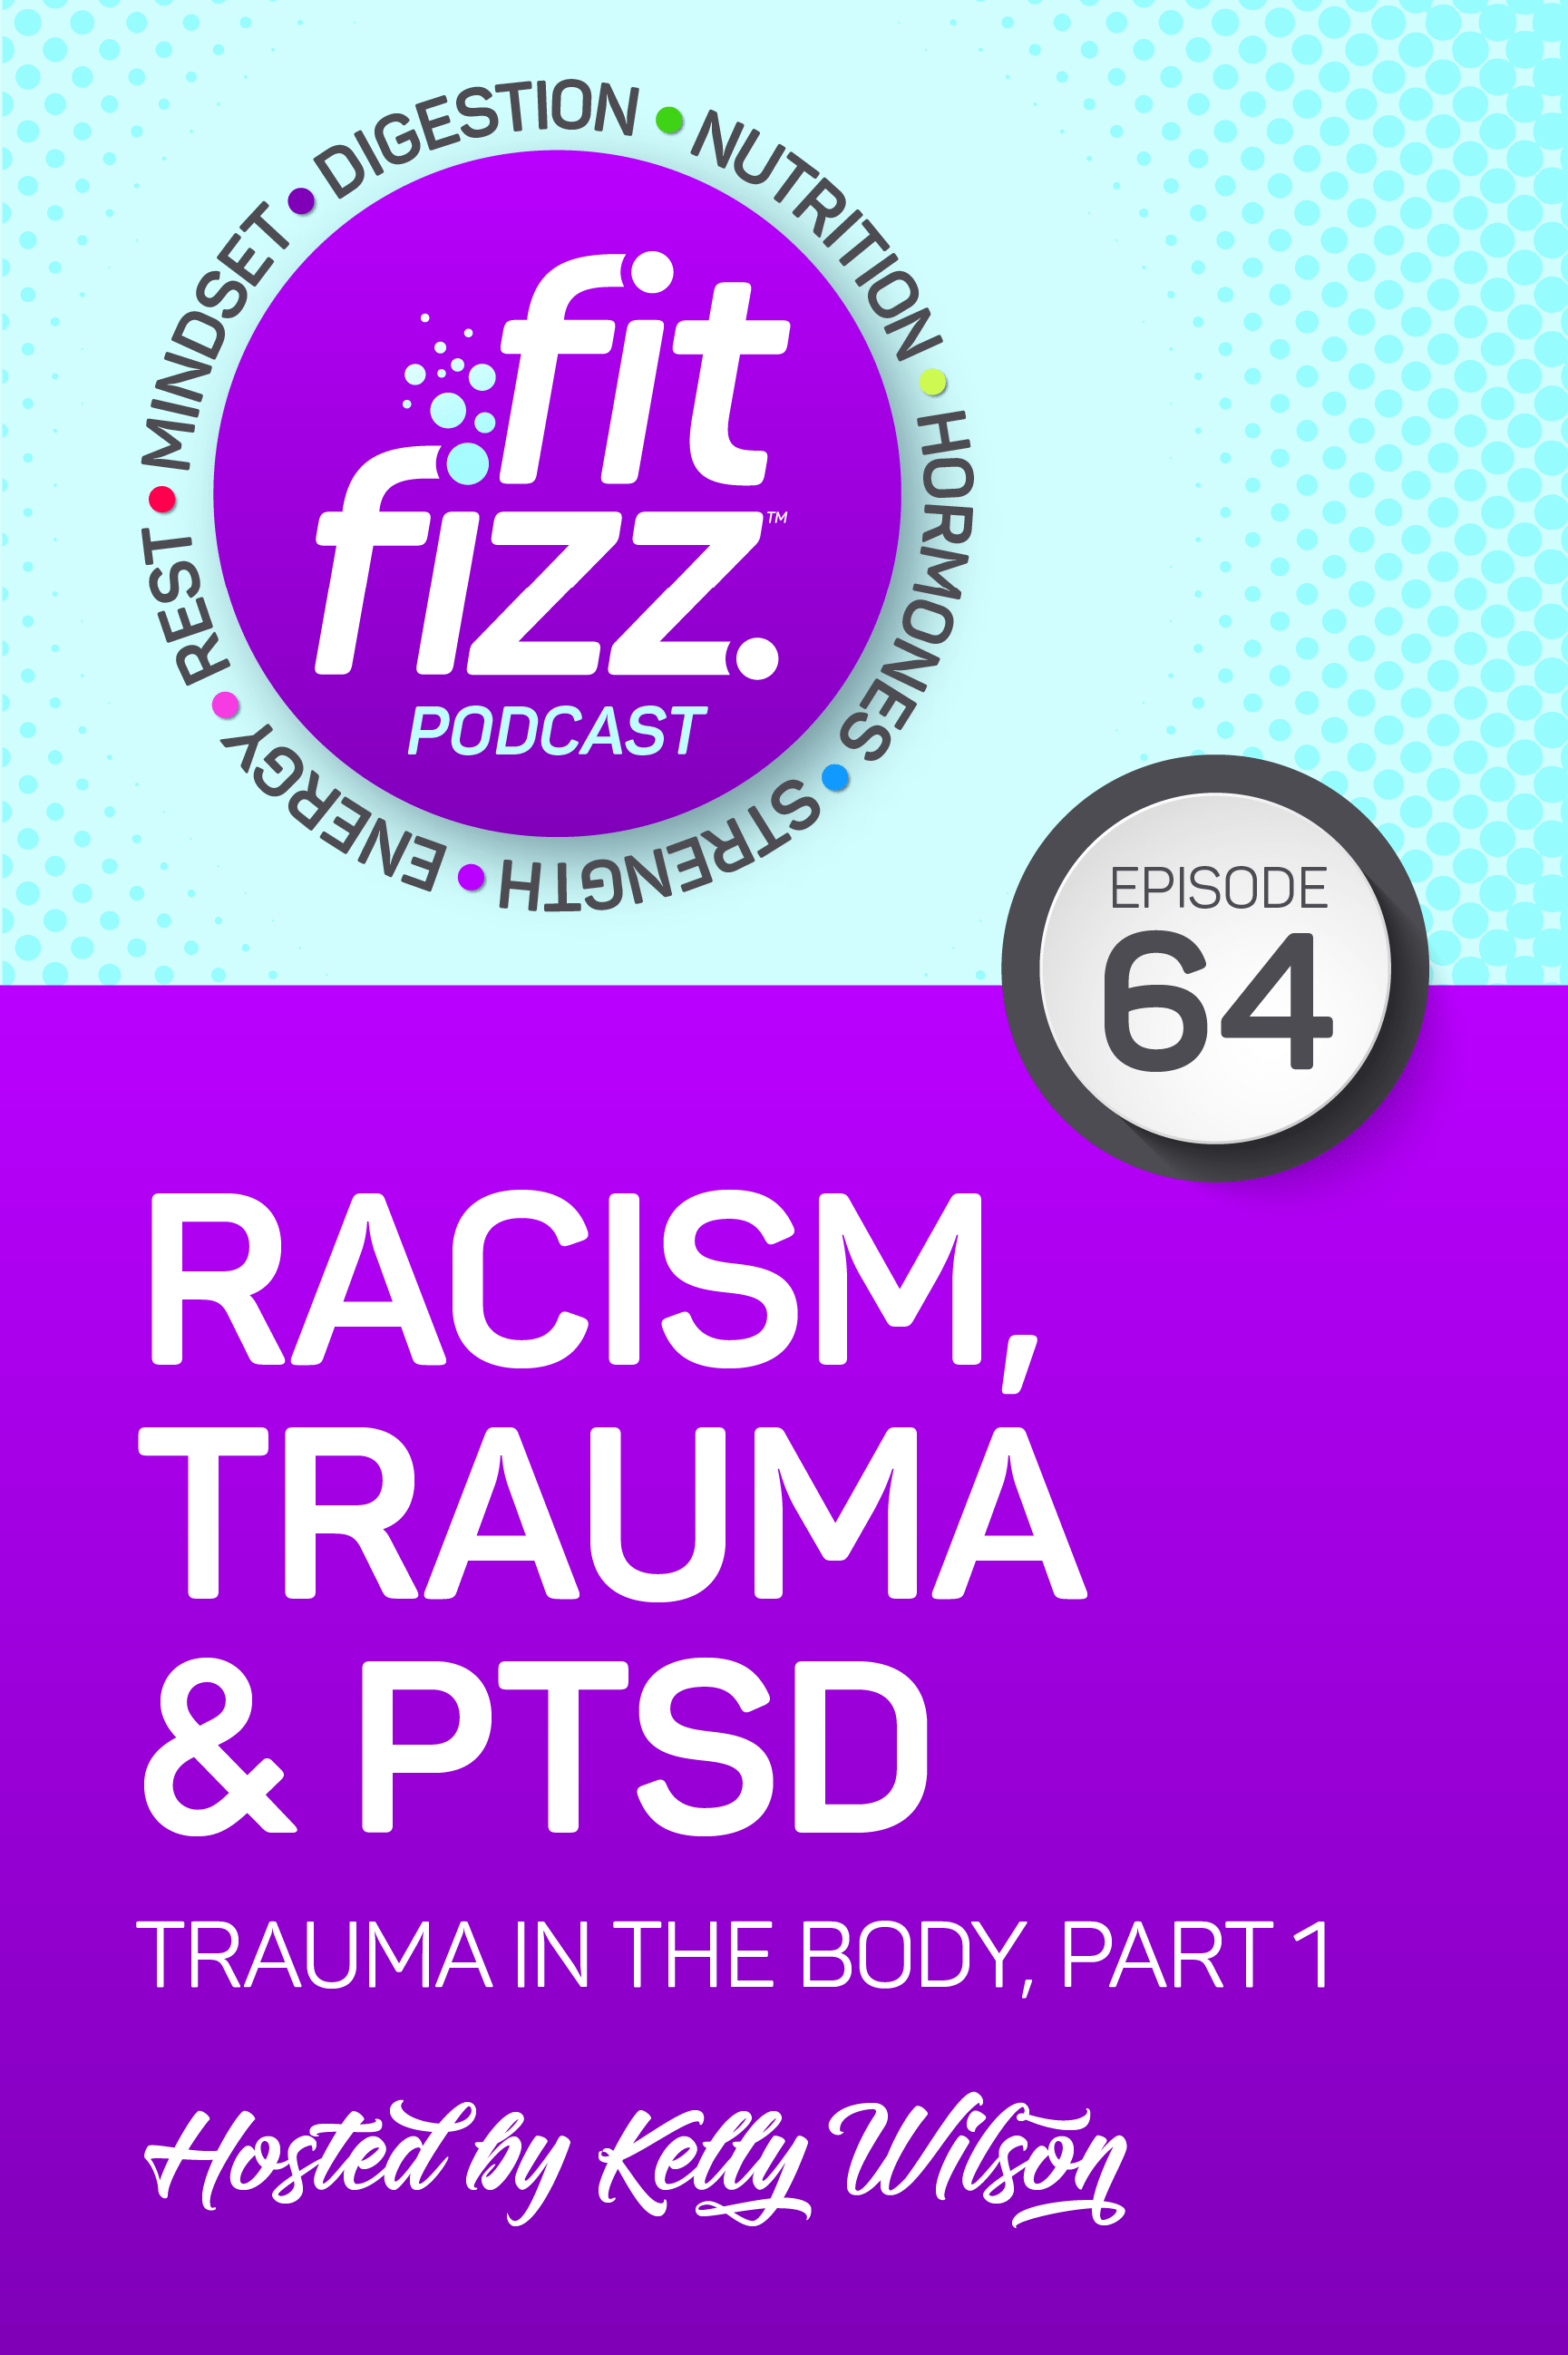 Ep. 64: Racism, Trauma and PTSD (Trauma in the Body, Part 1)